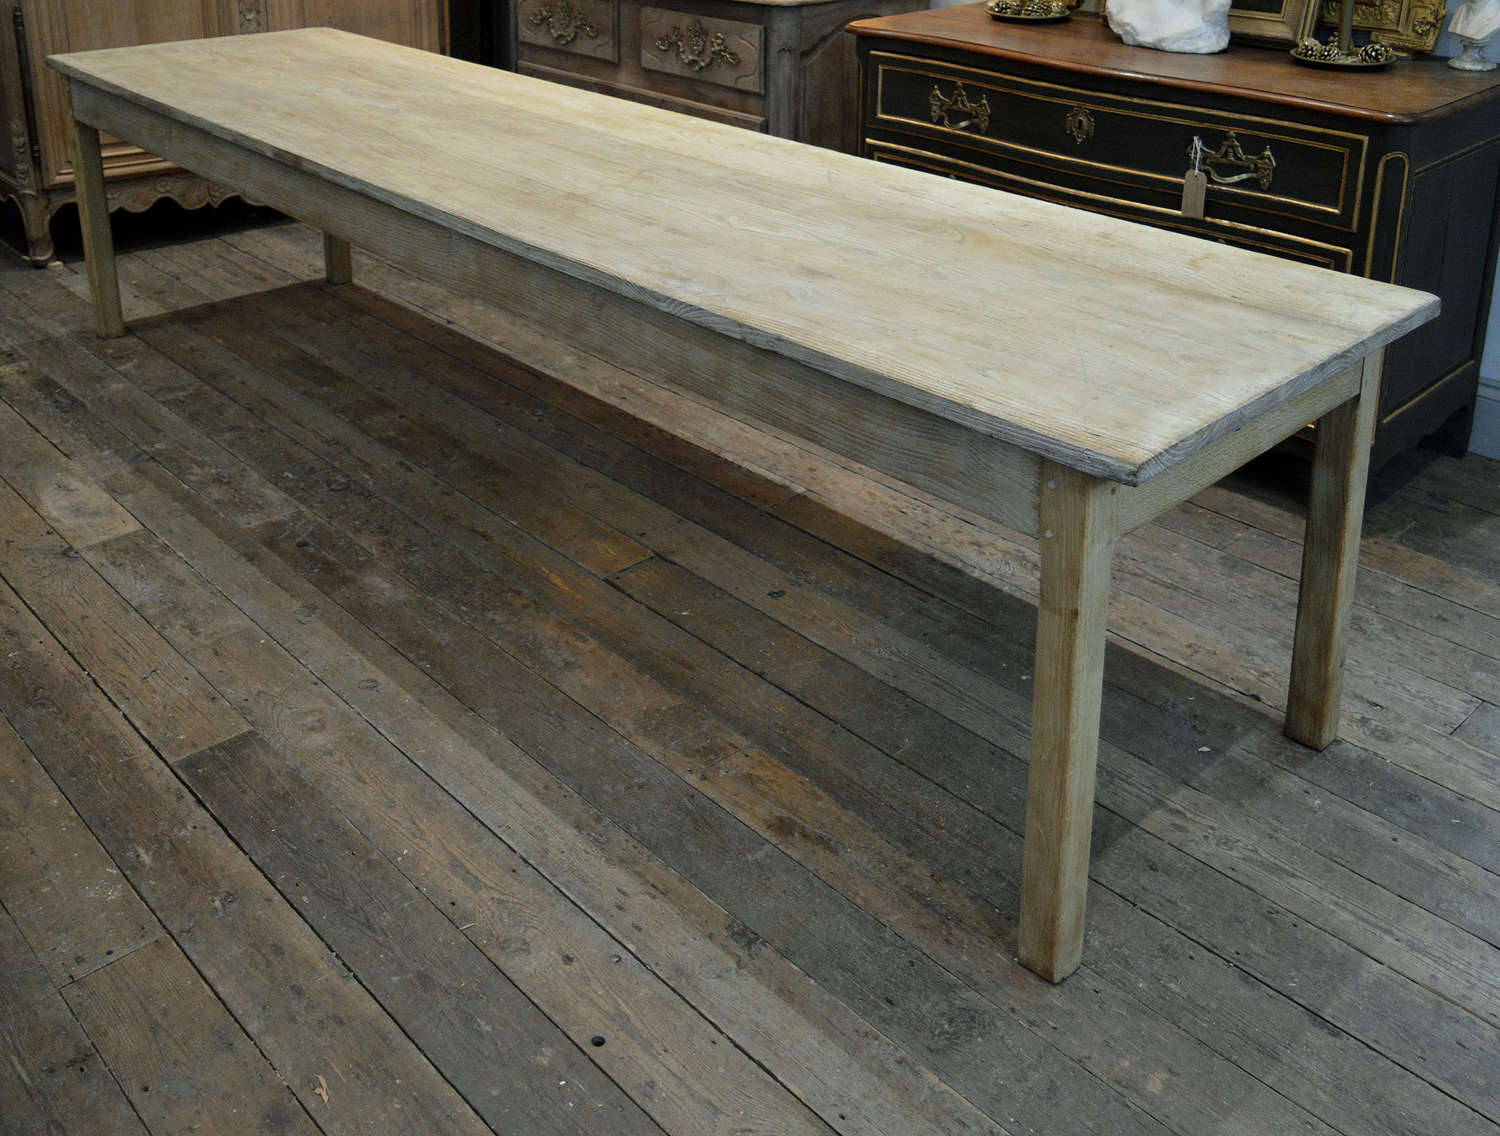 Large 3 meter Bleached Oak and Chestnut Refectory Table